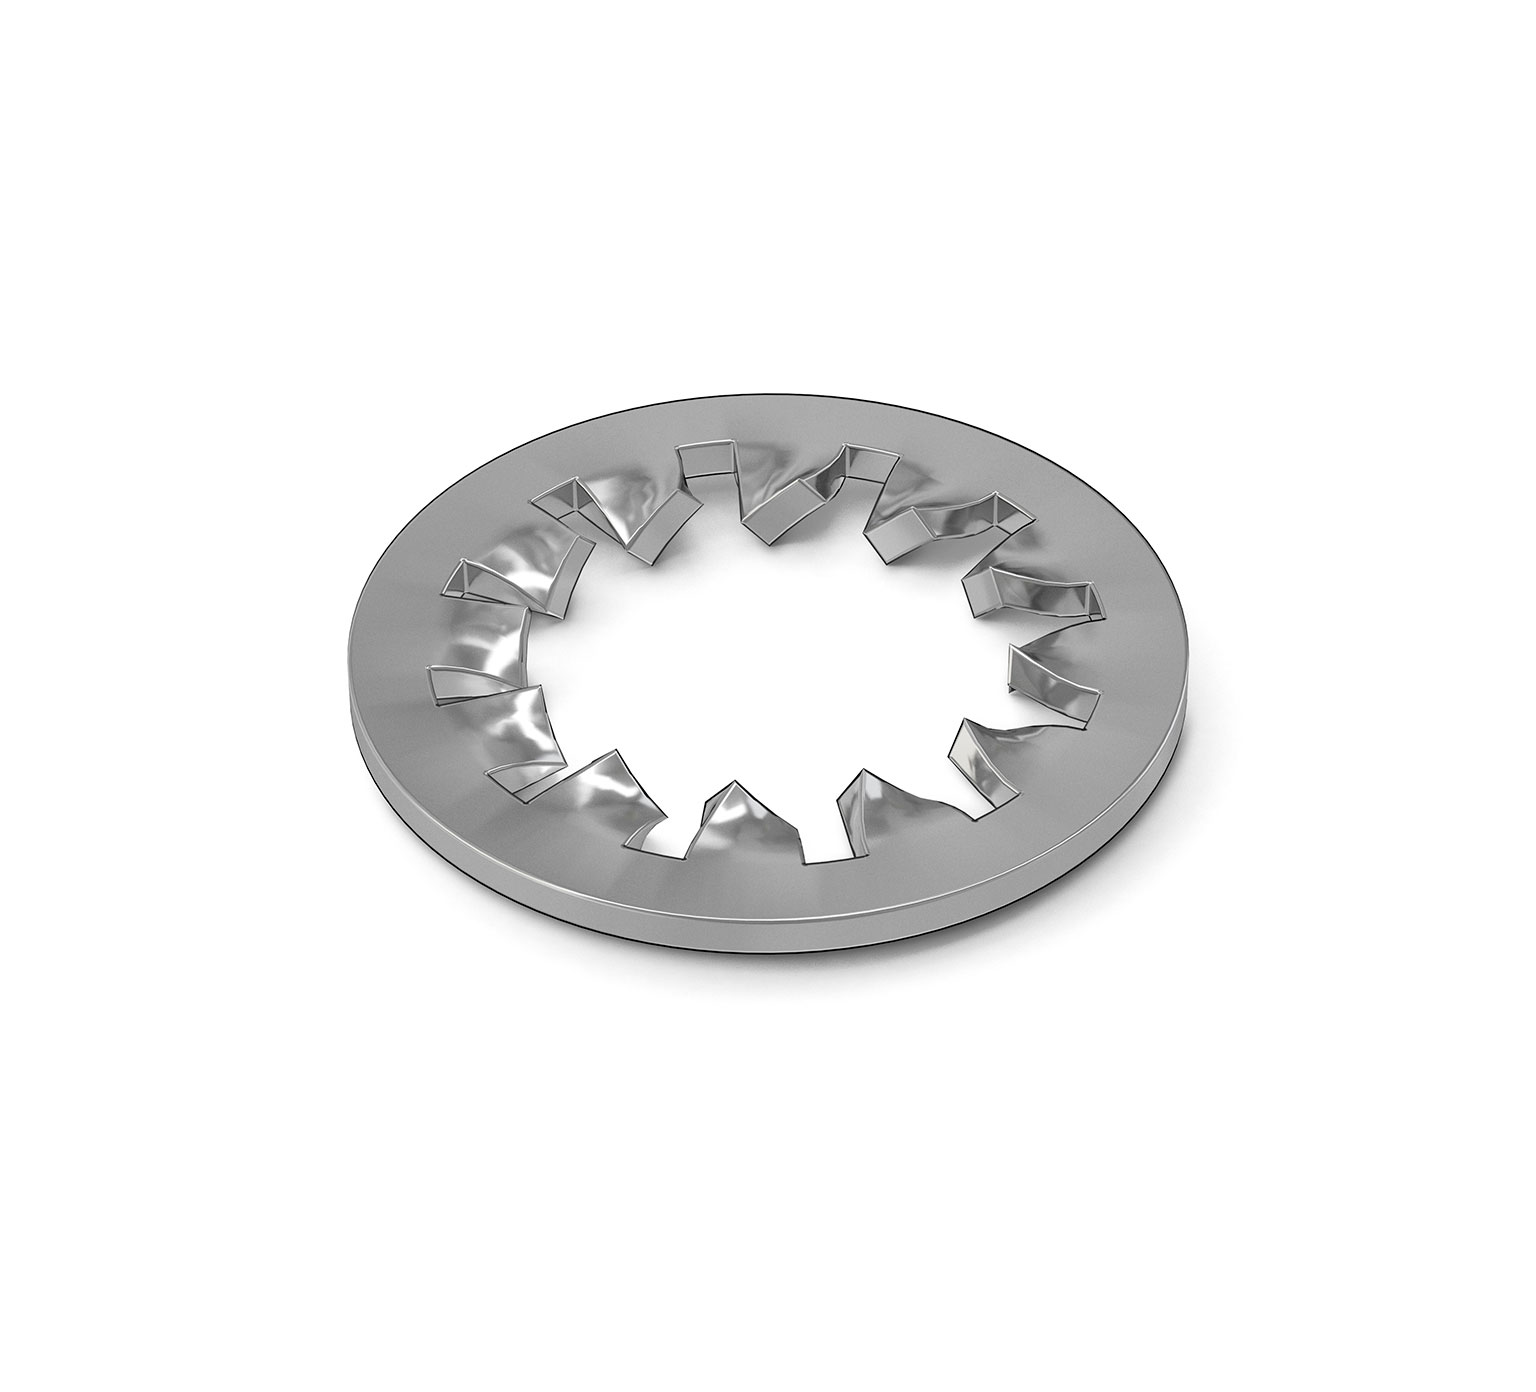 02938 Stainless Steel Lock Washer - 0.17 ID x 0.33 OD x 0.02 in alt 1